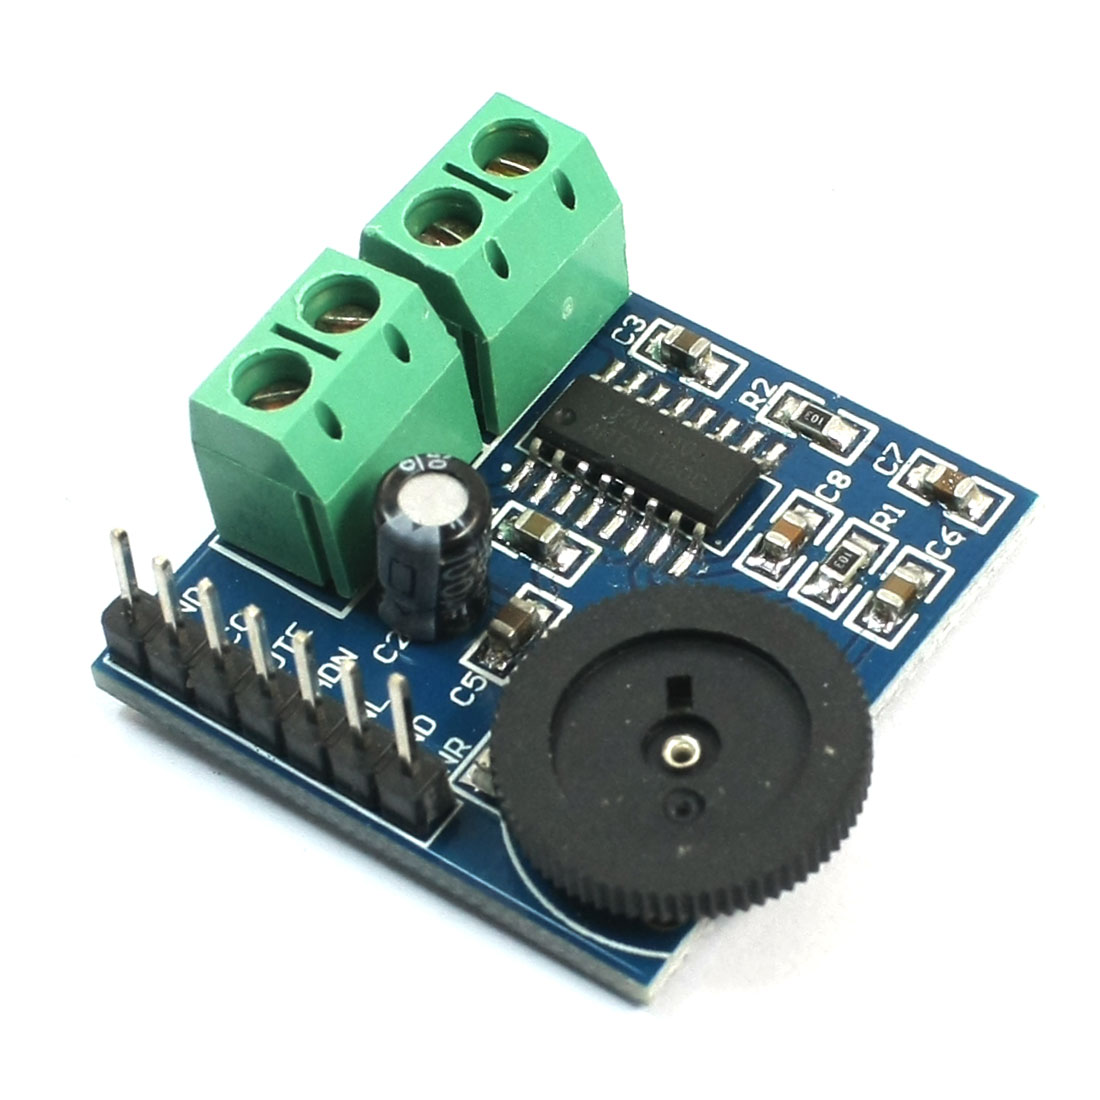 PAM8403 2-Channel Mini Digital Audio Amplifier Board w Volume Control